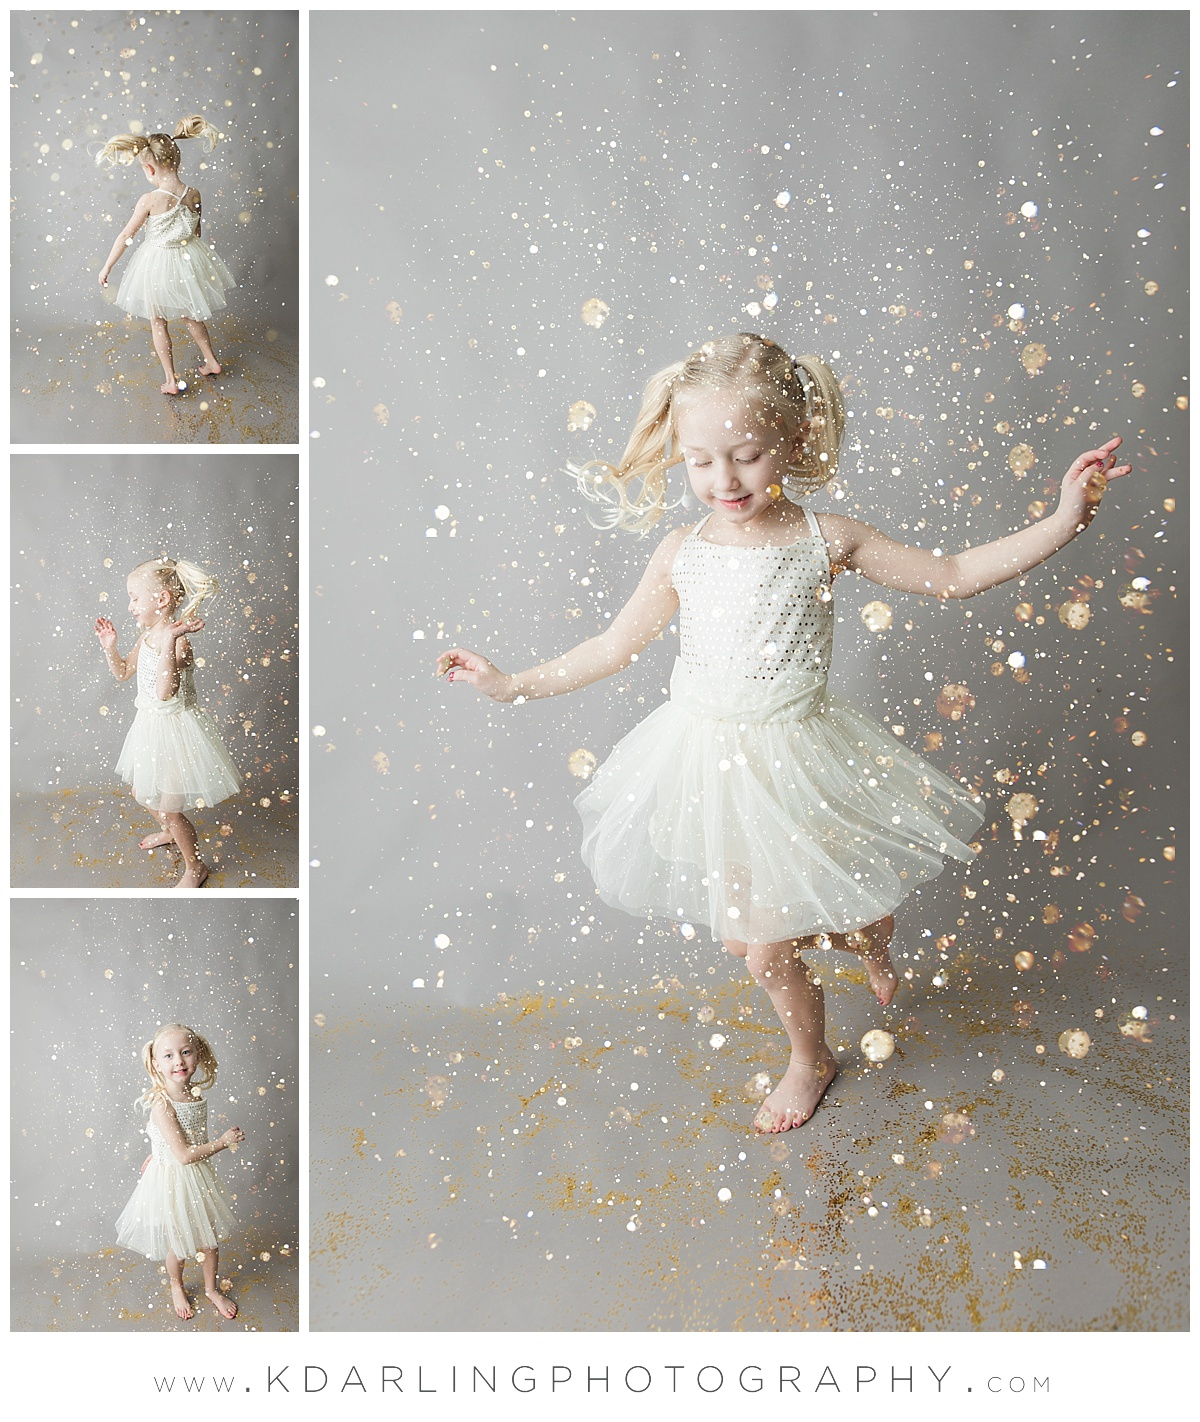 Four year old girl throwing gold glitter